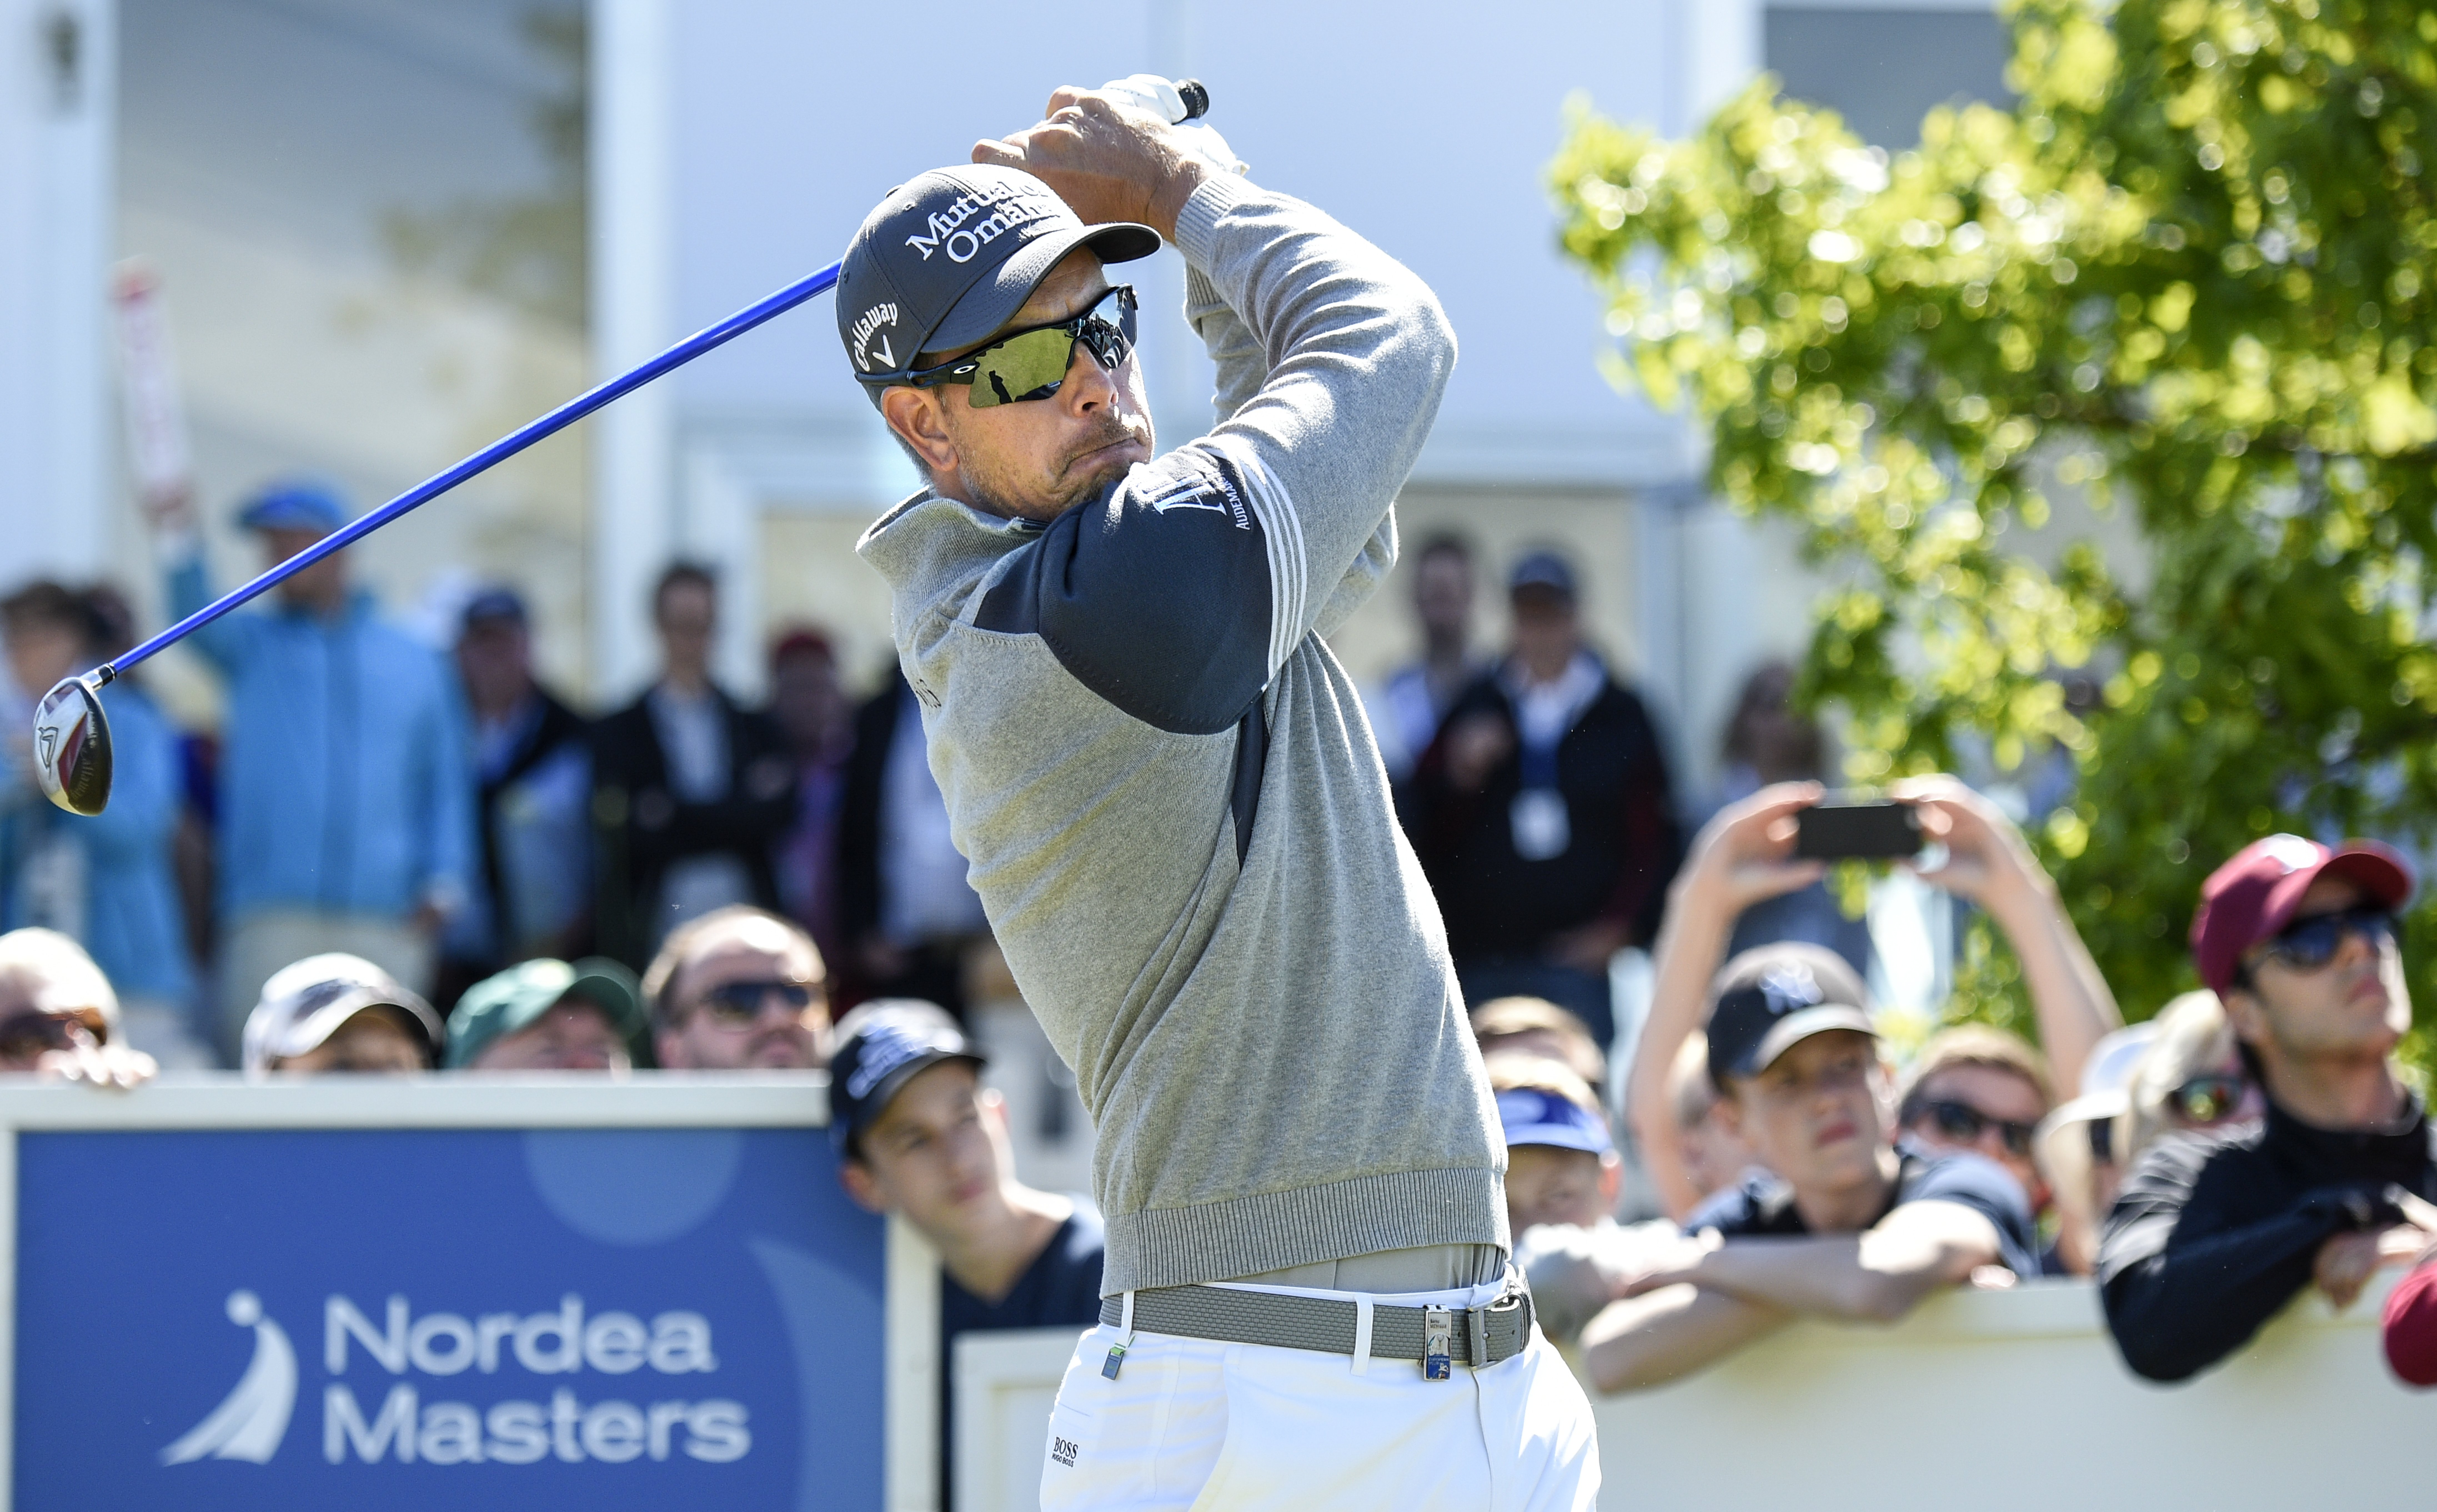 Sweden's Henrik Stenson on hole 10 during the Nordea Masters golf tournament at the PGA National golf course outside Malmo, Sweden, Friday, June 5, 2015. (Anders Wiklund / TT via AP)  SWEDEN